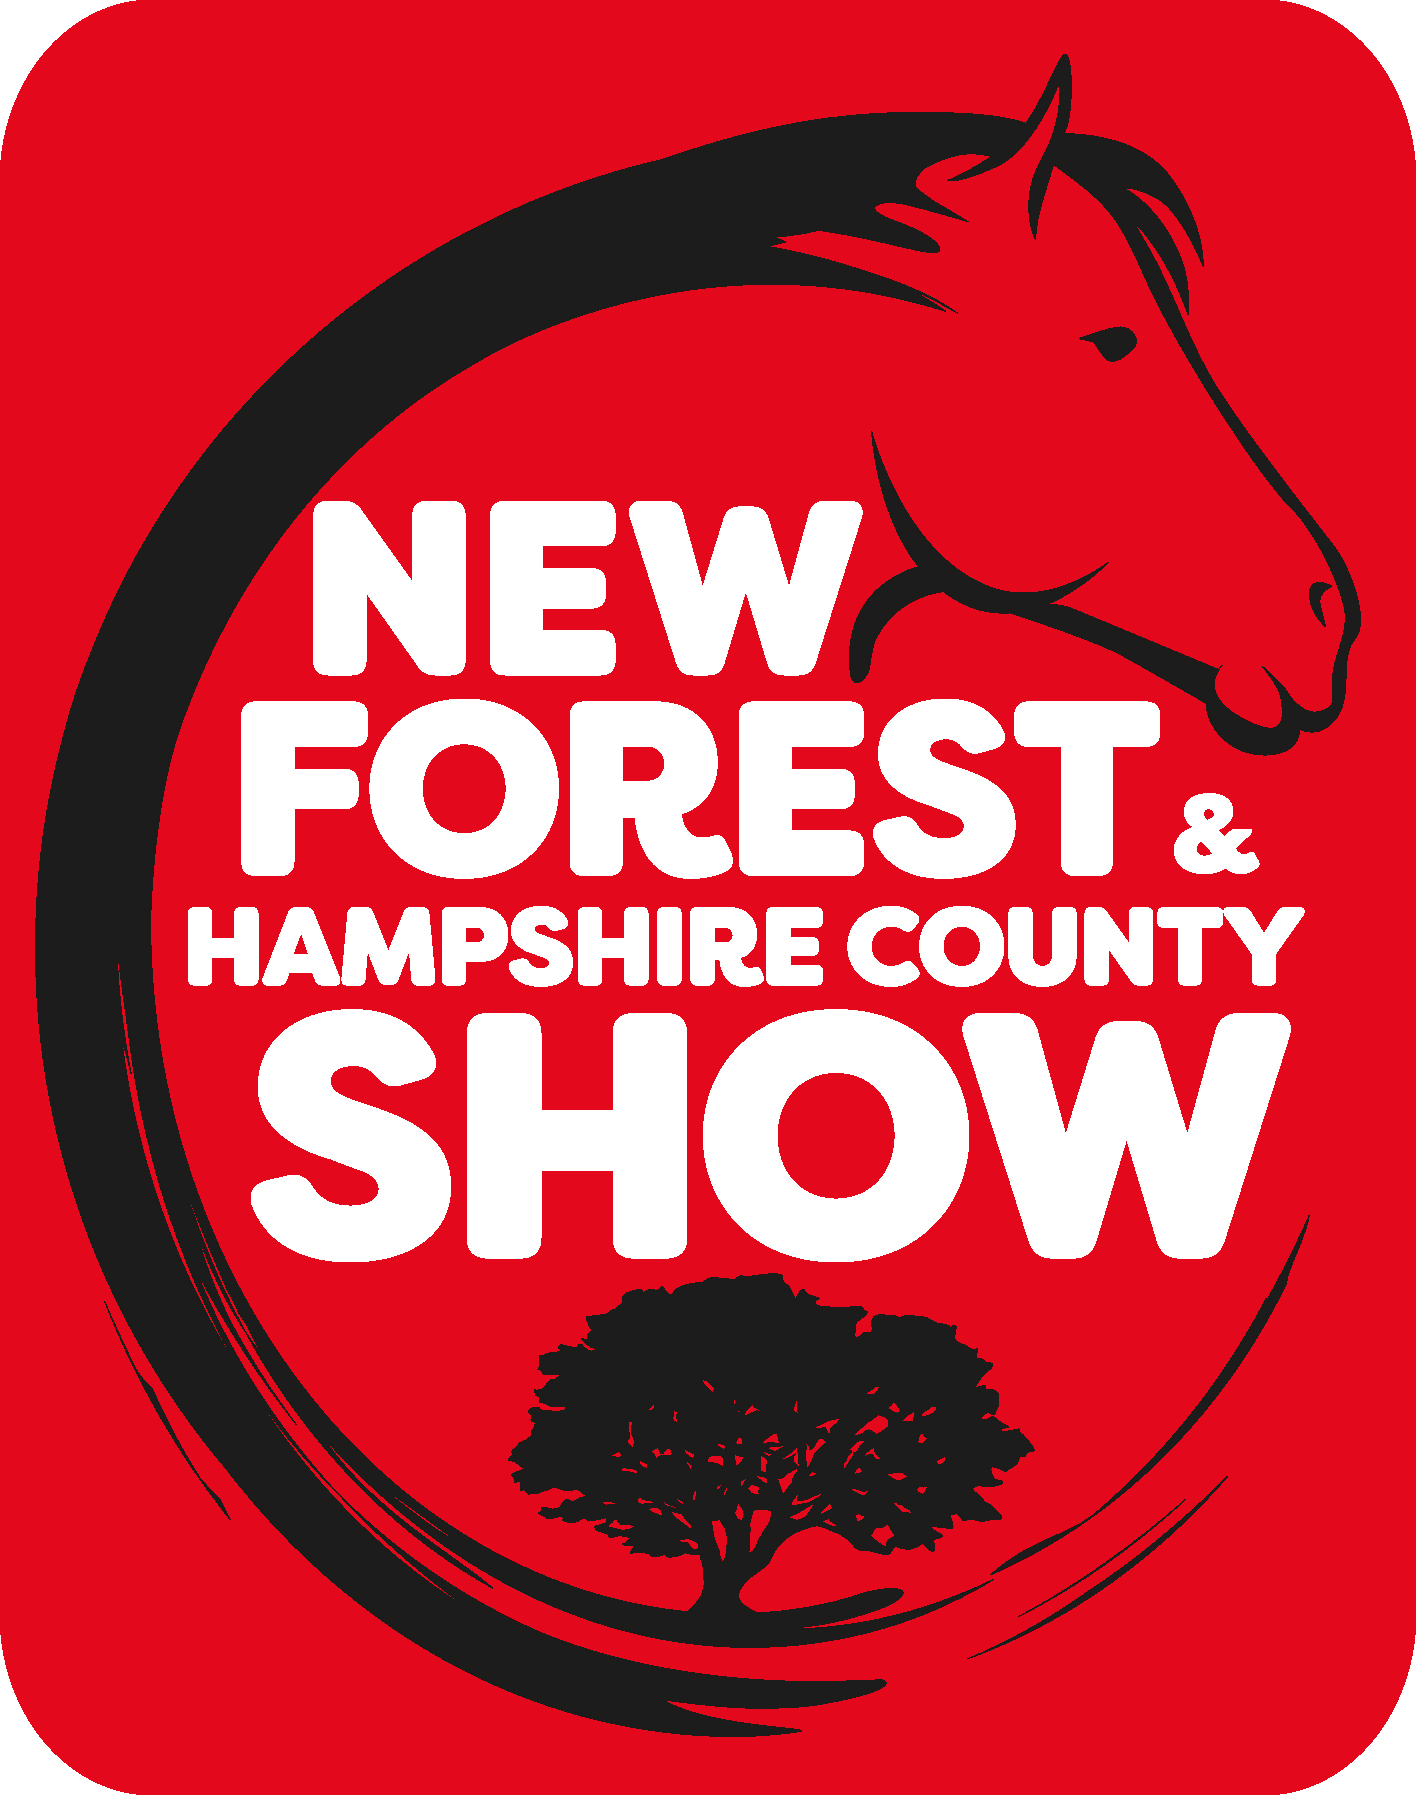 Entries open for New Forest Show Open Art Competition